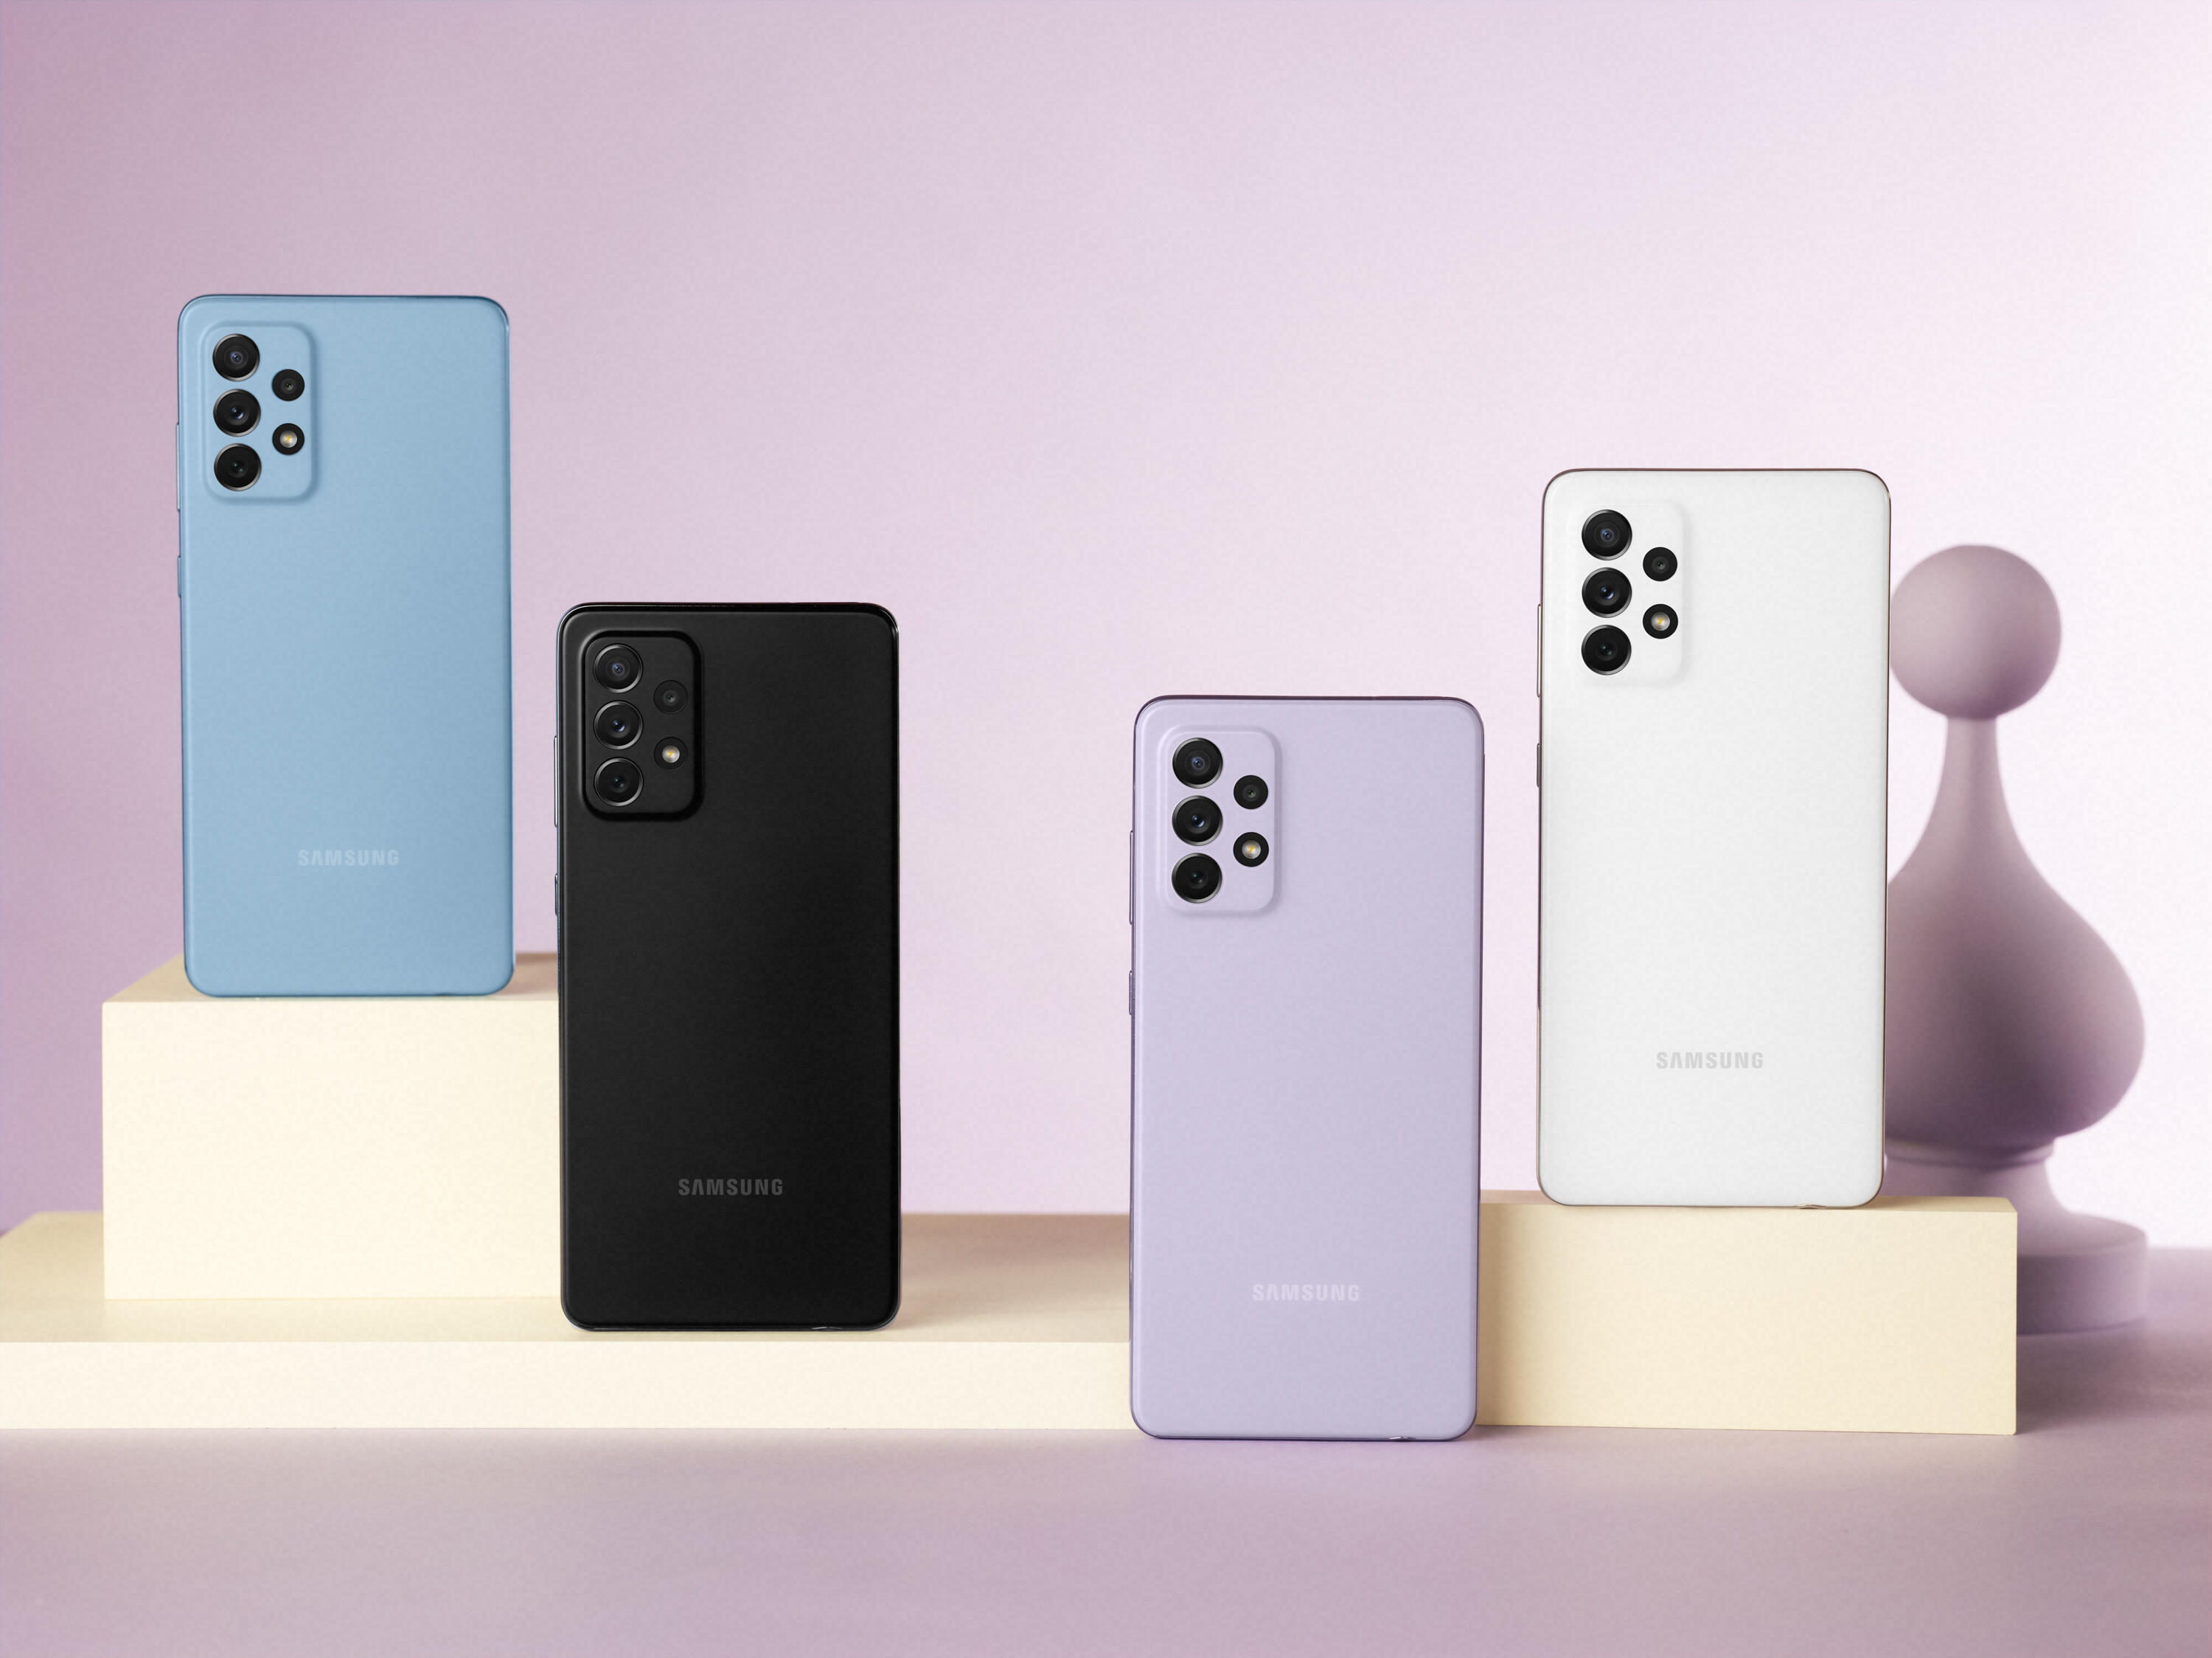 Samsung's Galaxy A72 in blue, black, violet, and white.